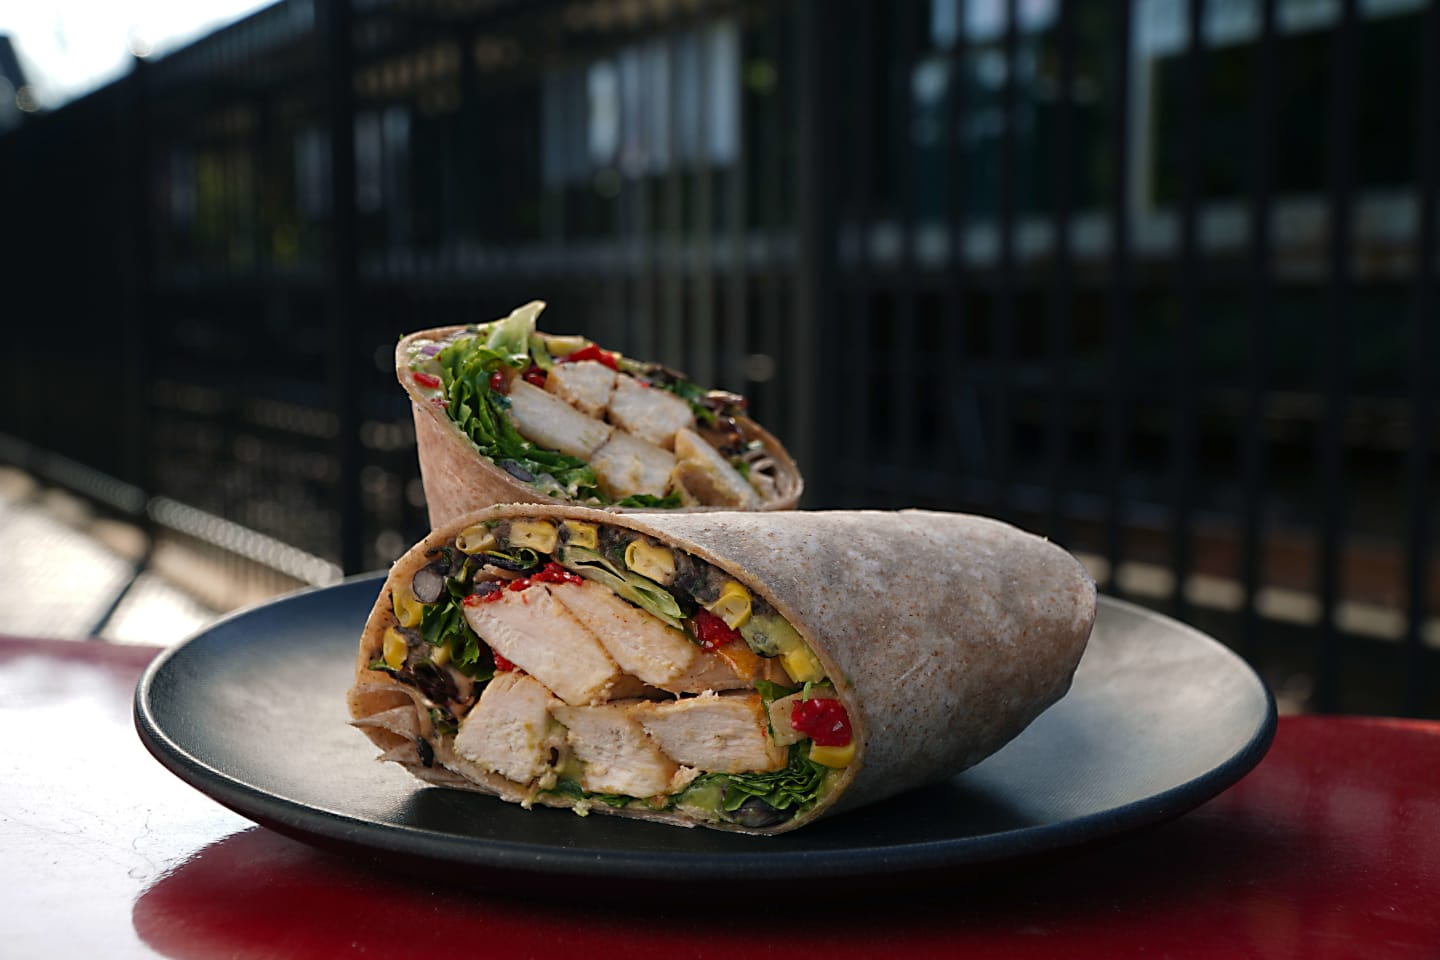 8. The Nacho Libre Wrap